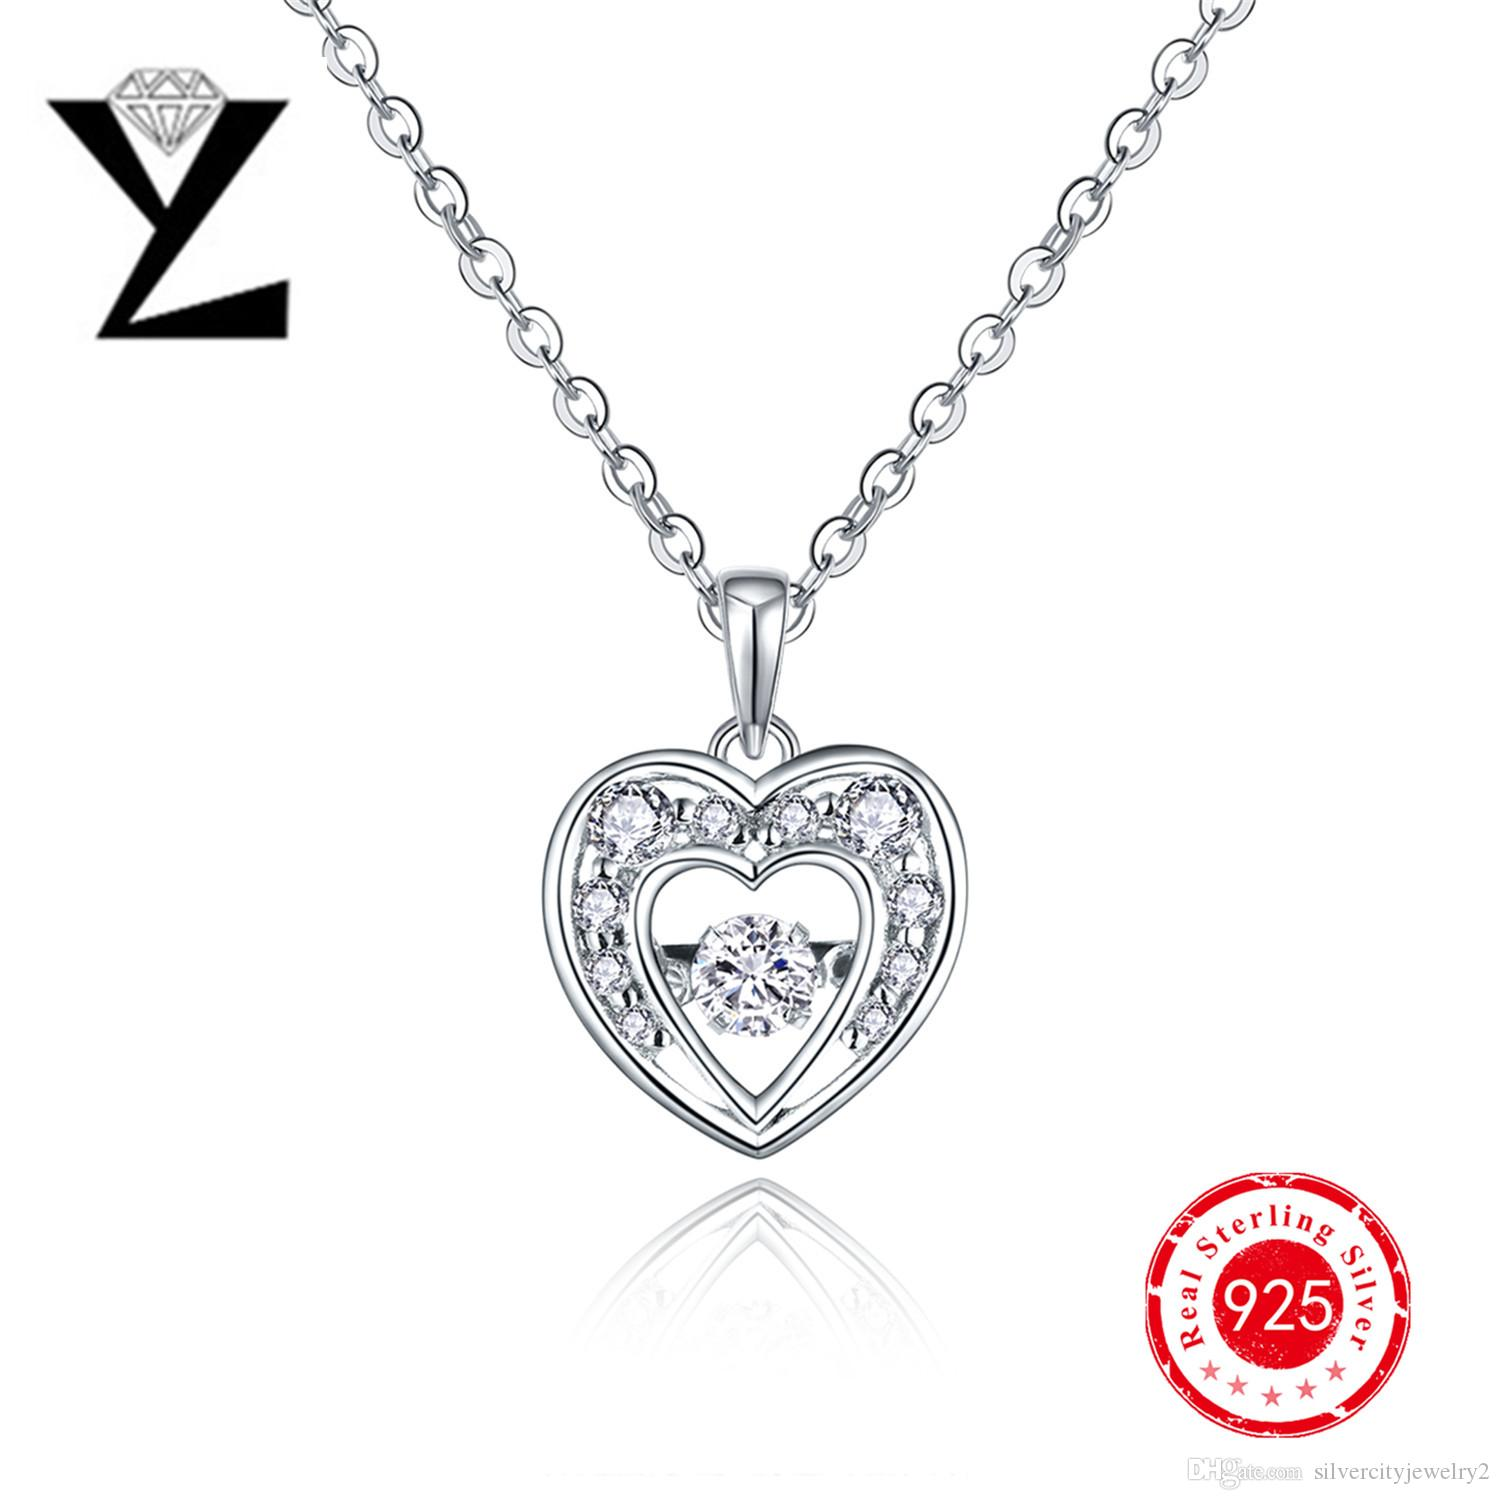 2017 Best Price genuine 925 Sterling Silver Heart Pendant With